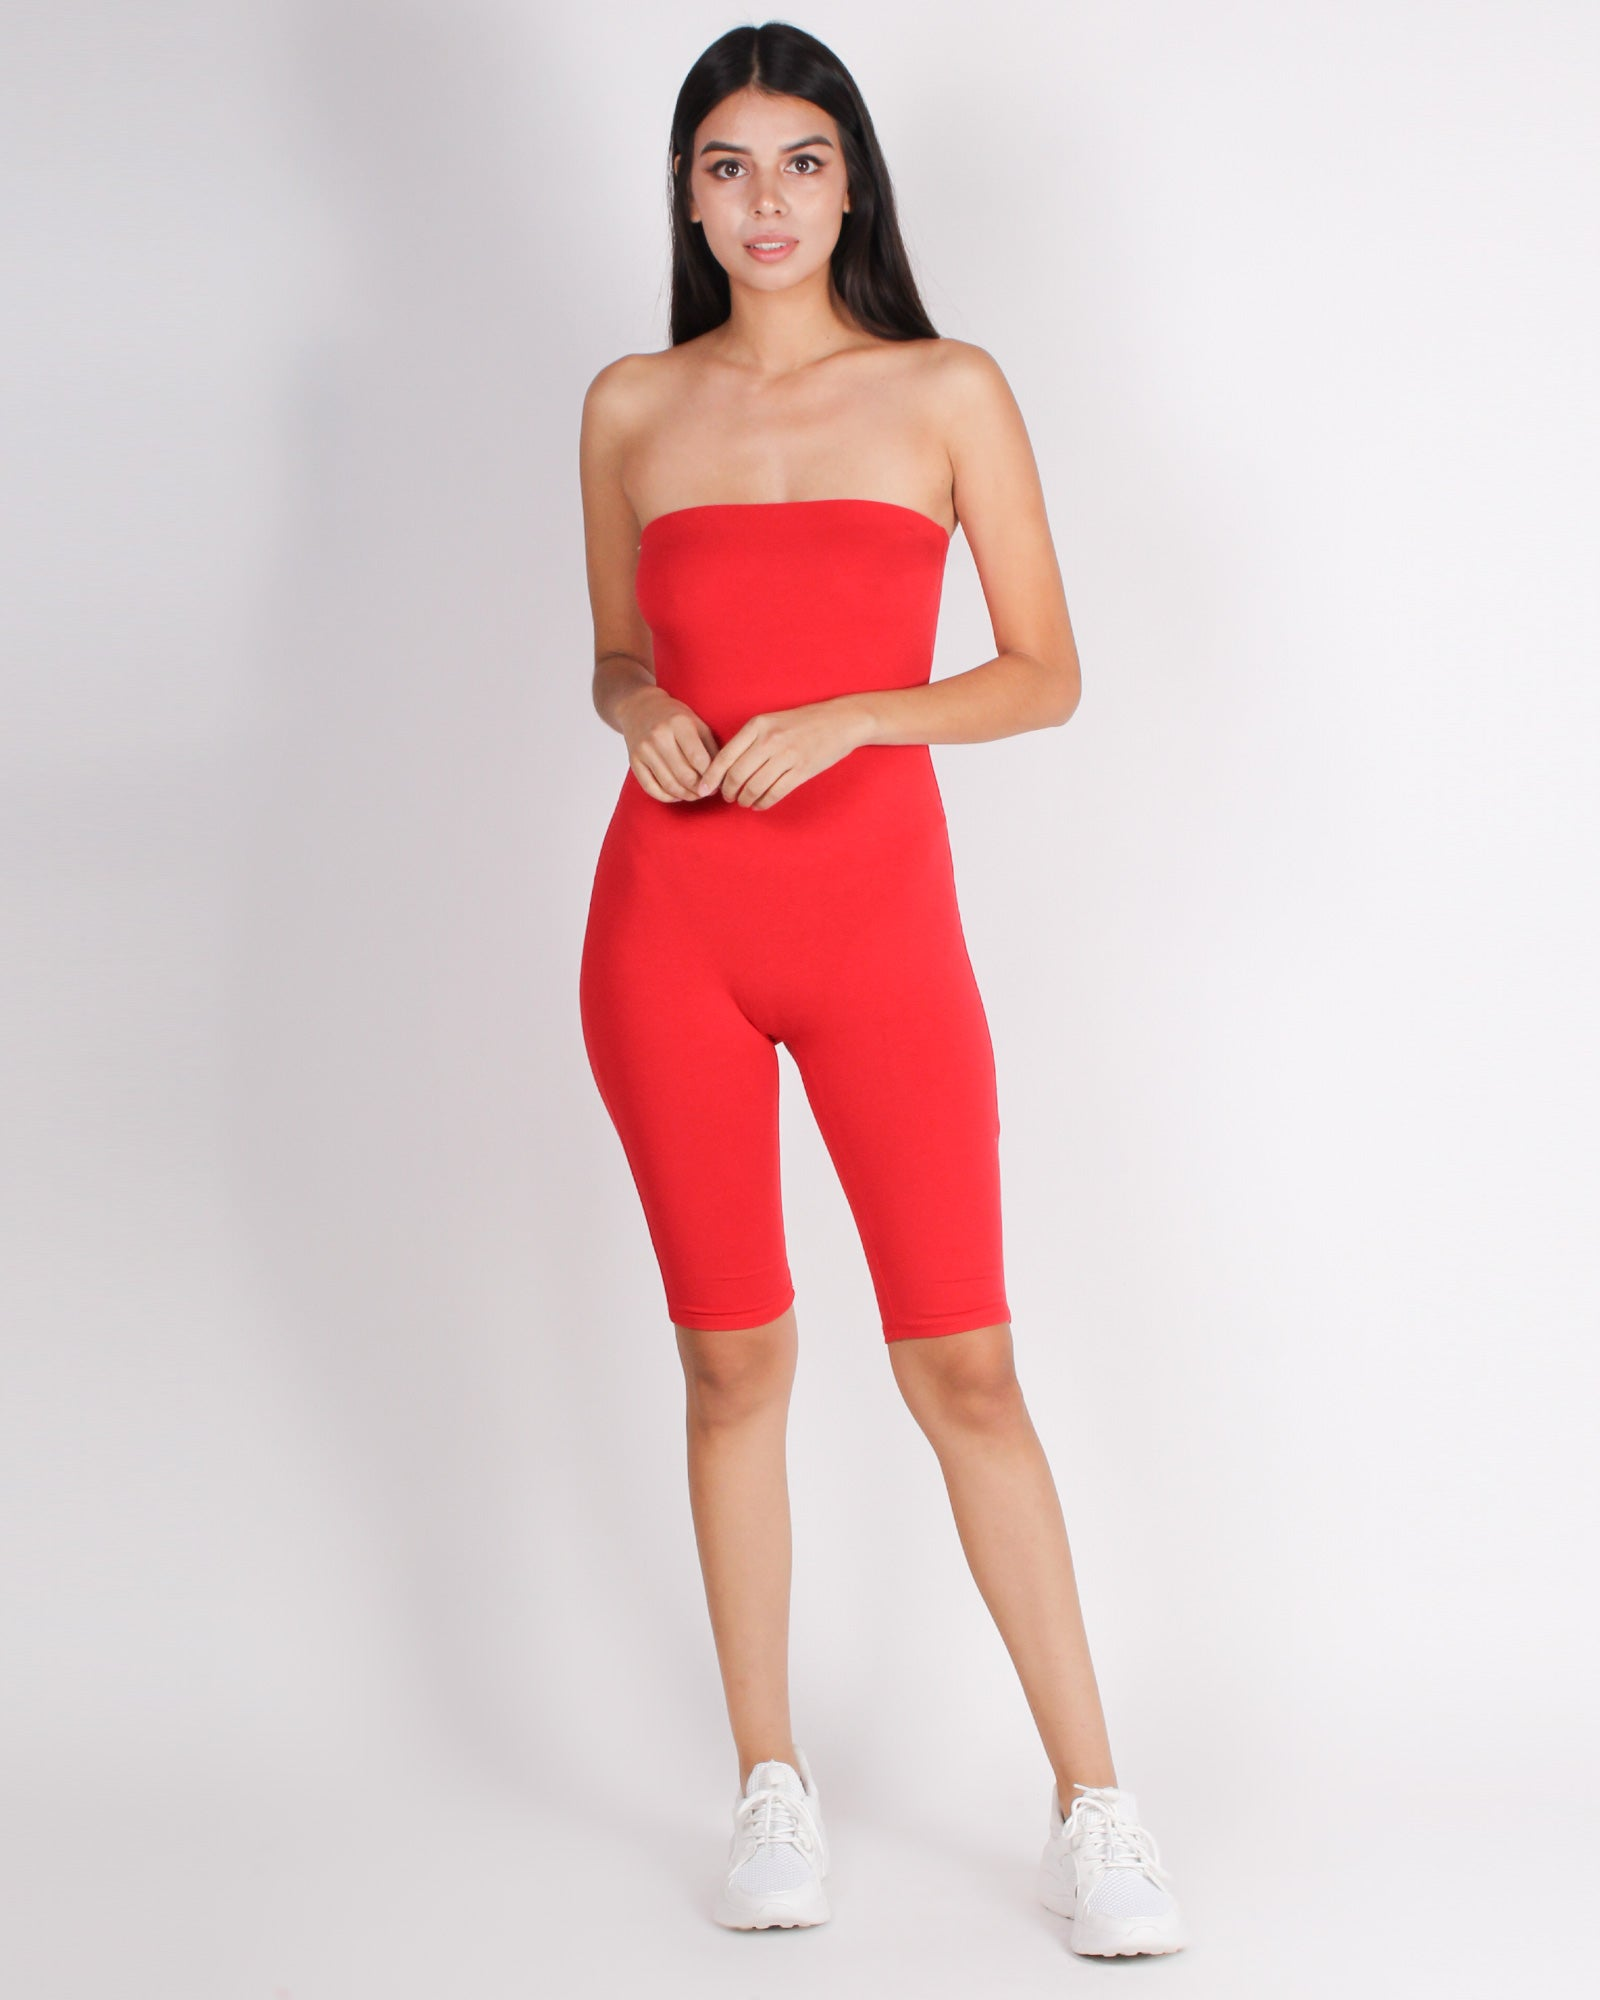 Fashion Q Shop Q Let's Be Bad Romper (Red) JR34866